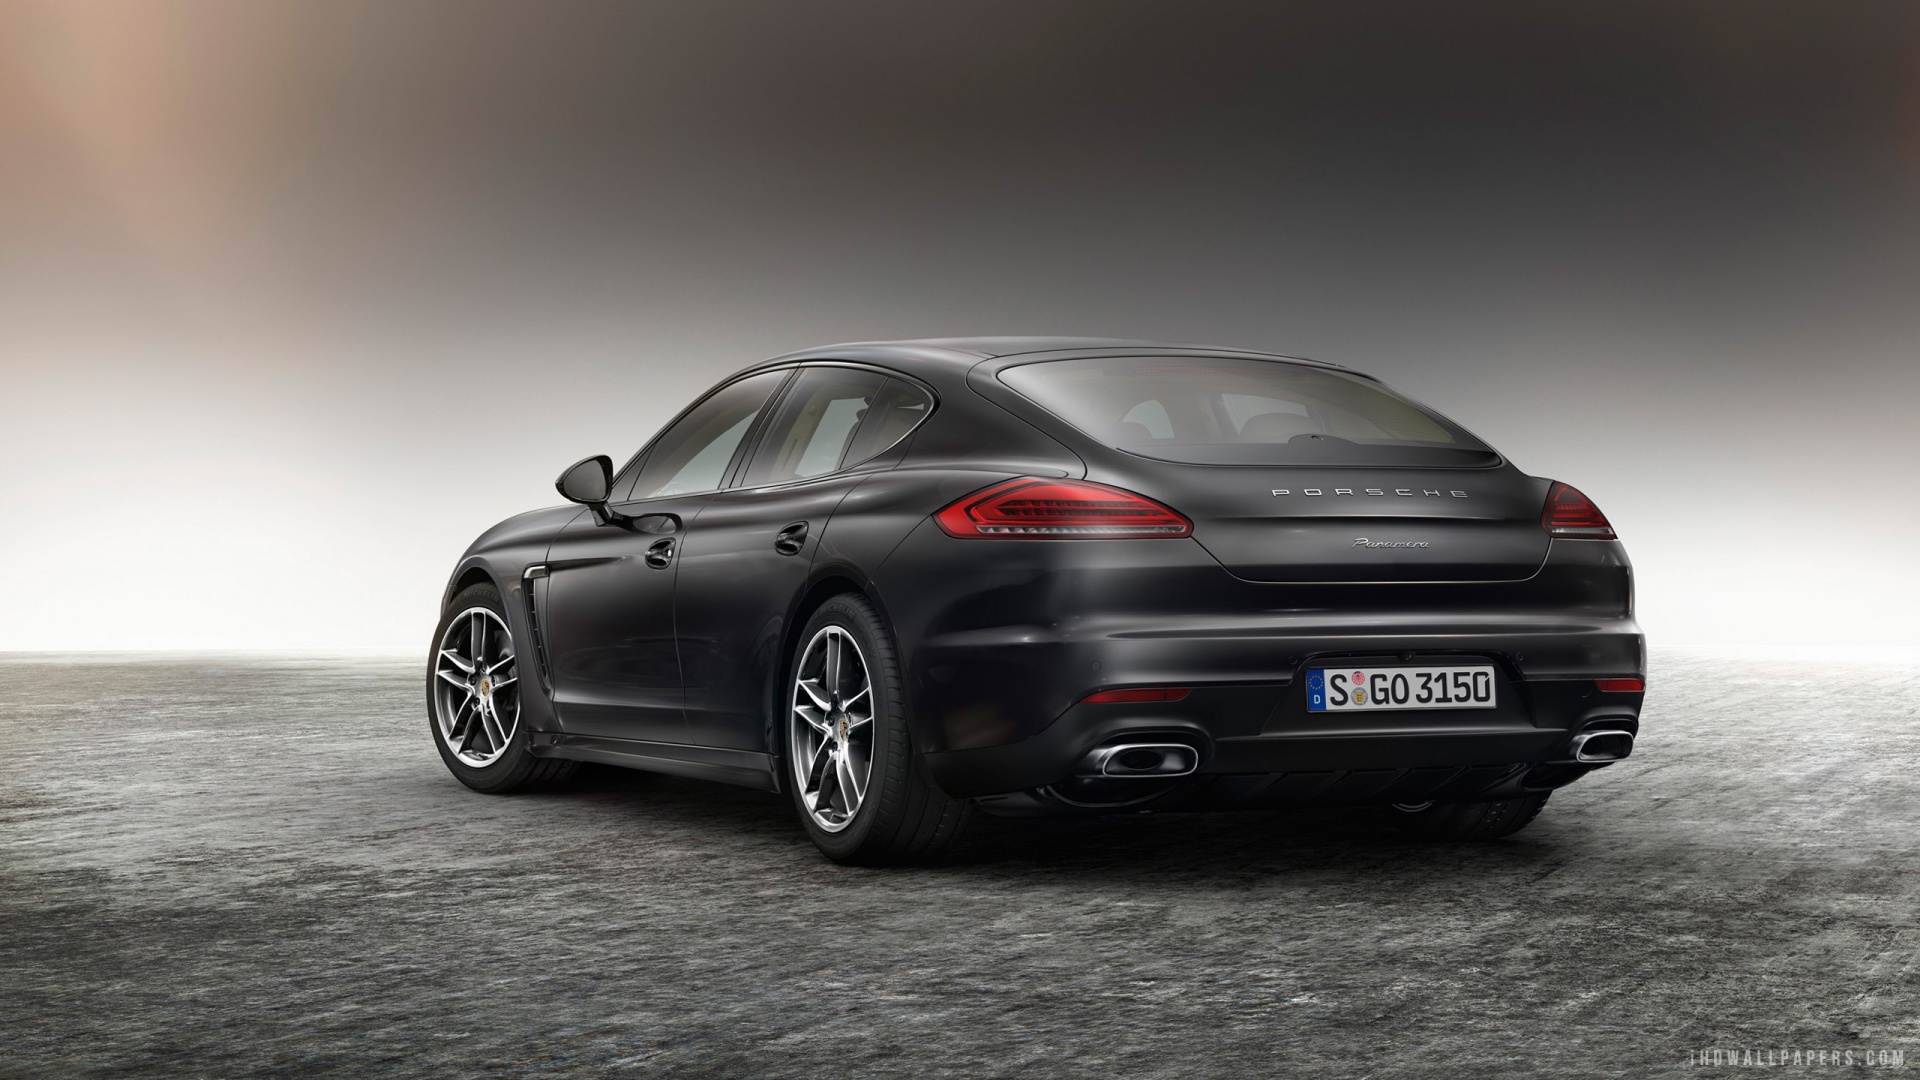 Porsche Panamera Edition 2015 Car HD Wallpaper   iHD Wallpapers 1920x1080